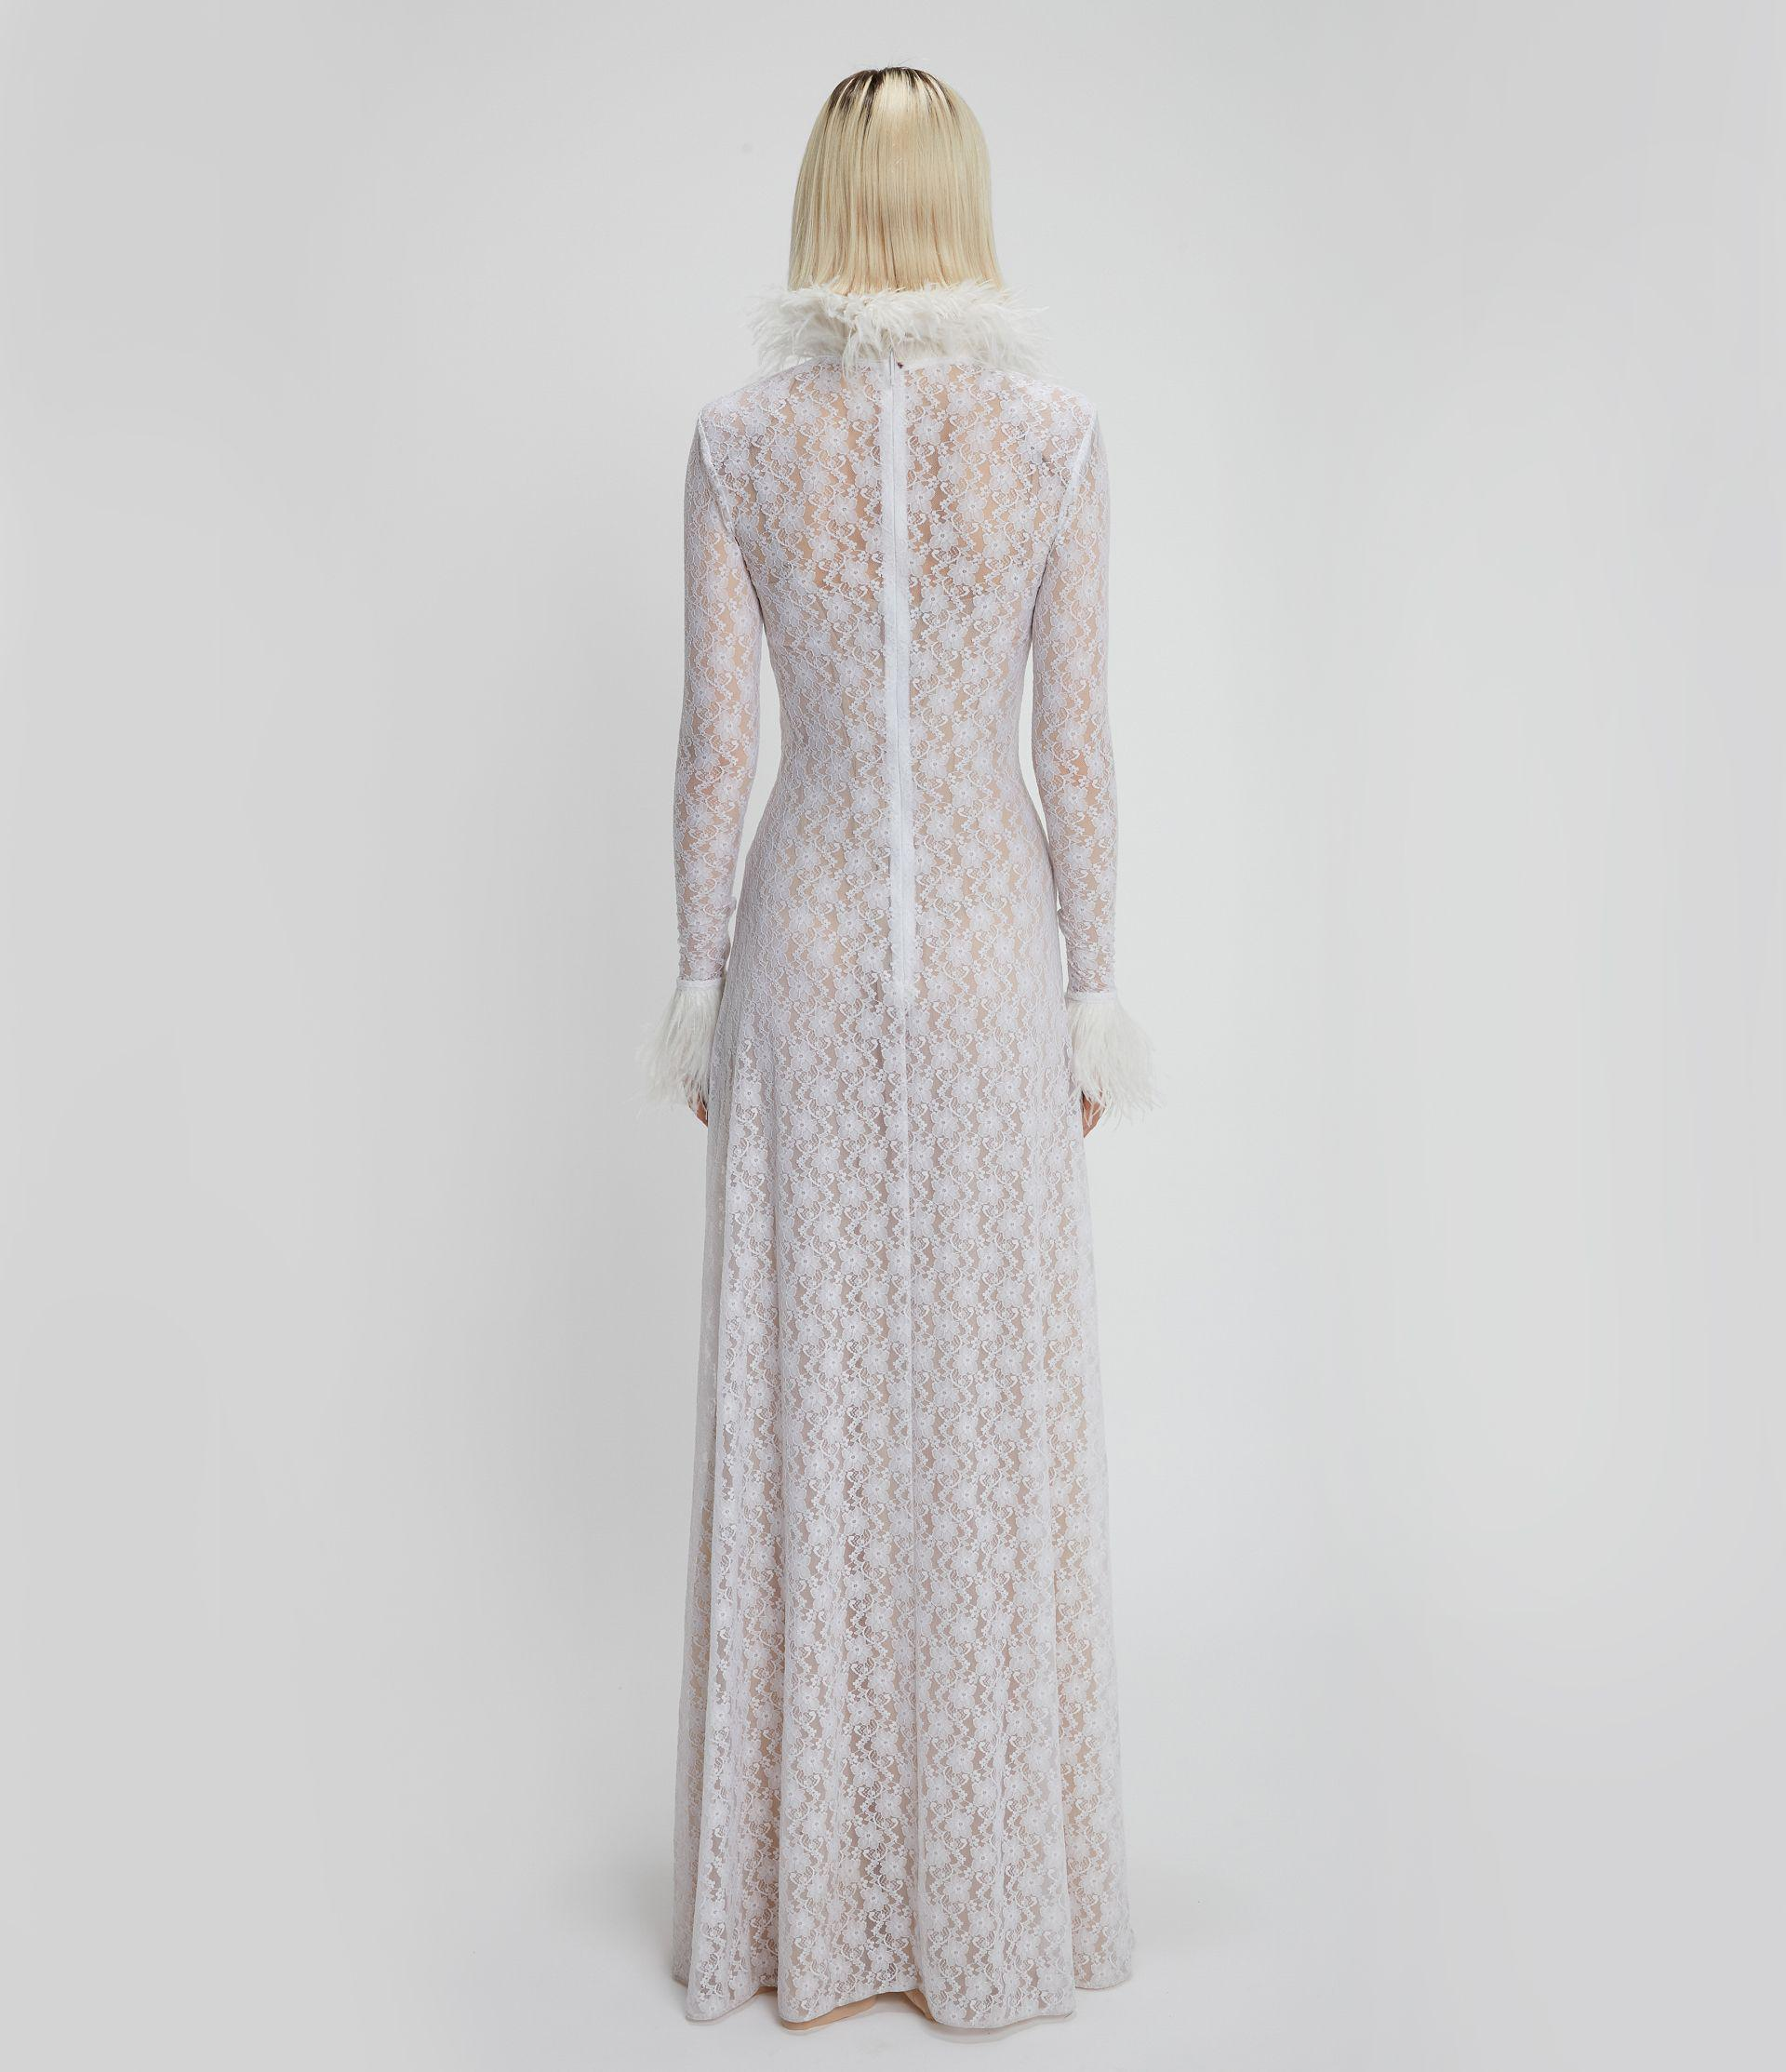 Christopher Kane Bridal: Lace Gown 2